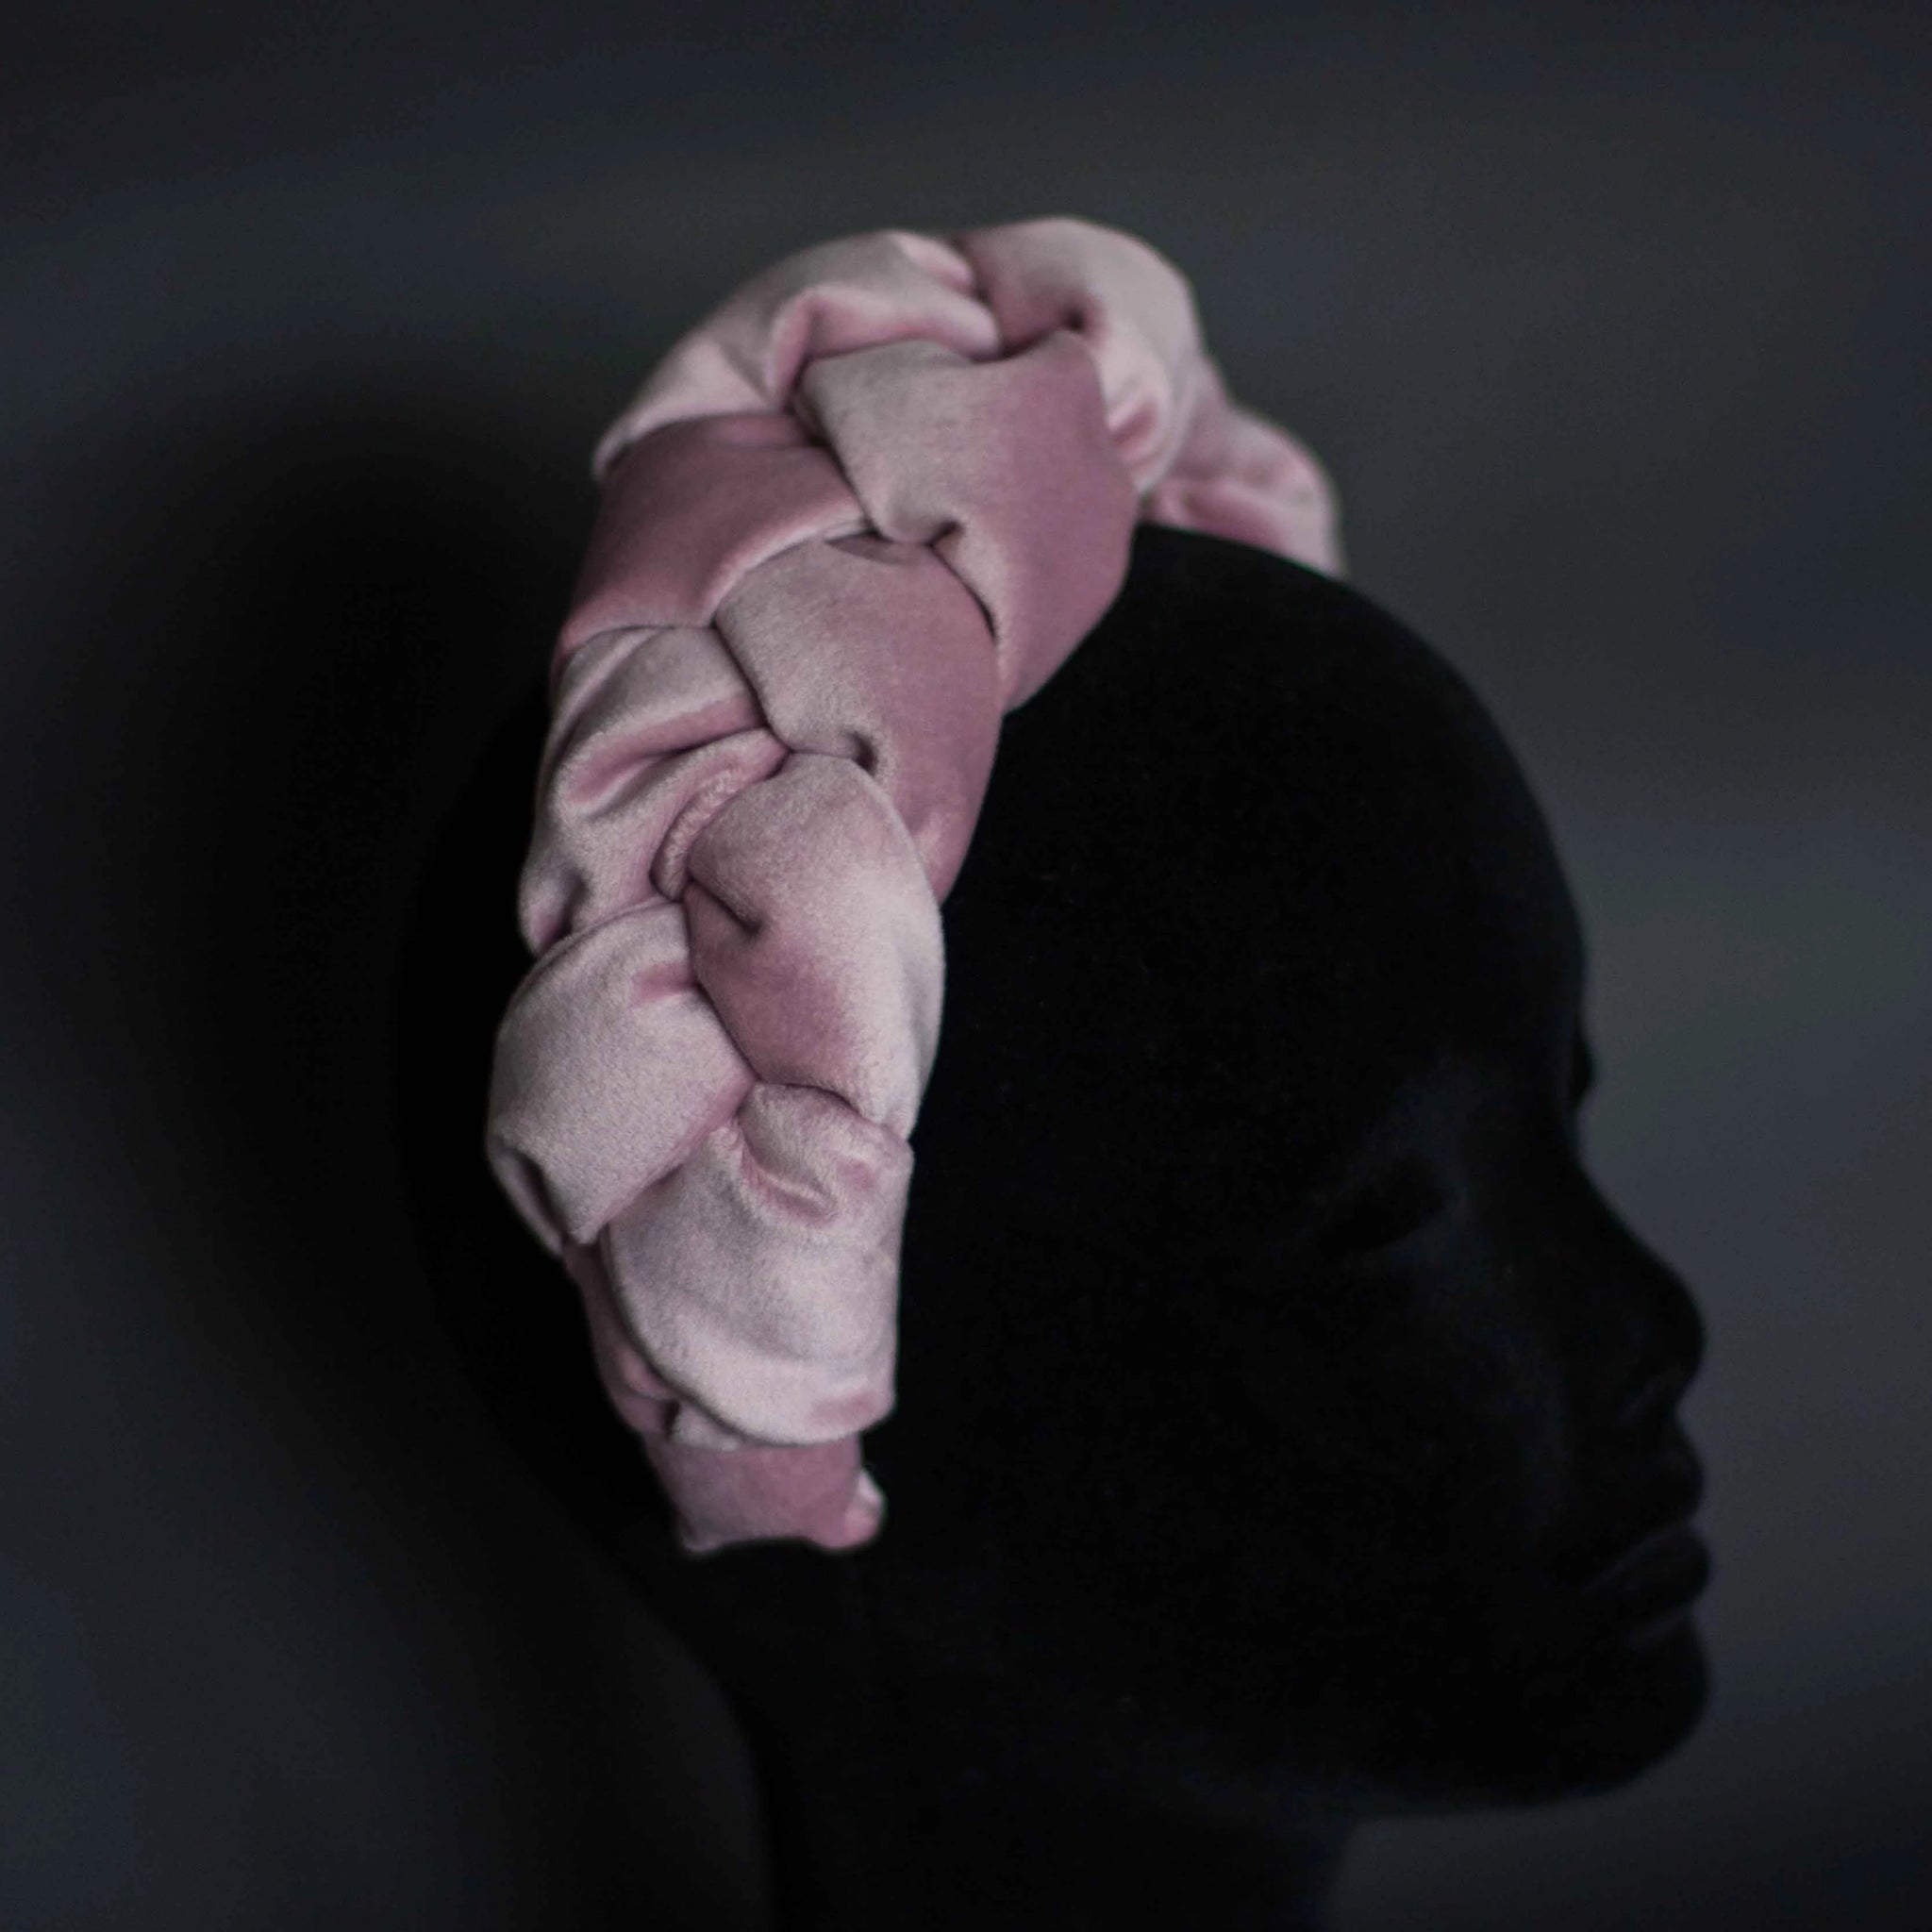 MICHELLE headband in light pink